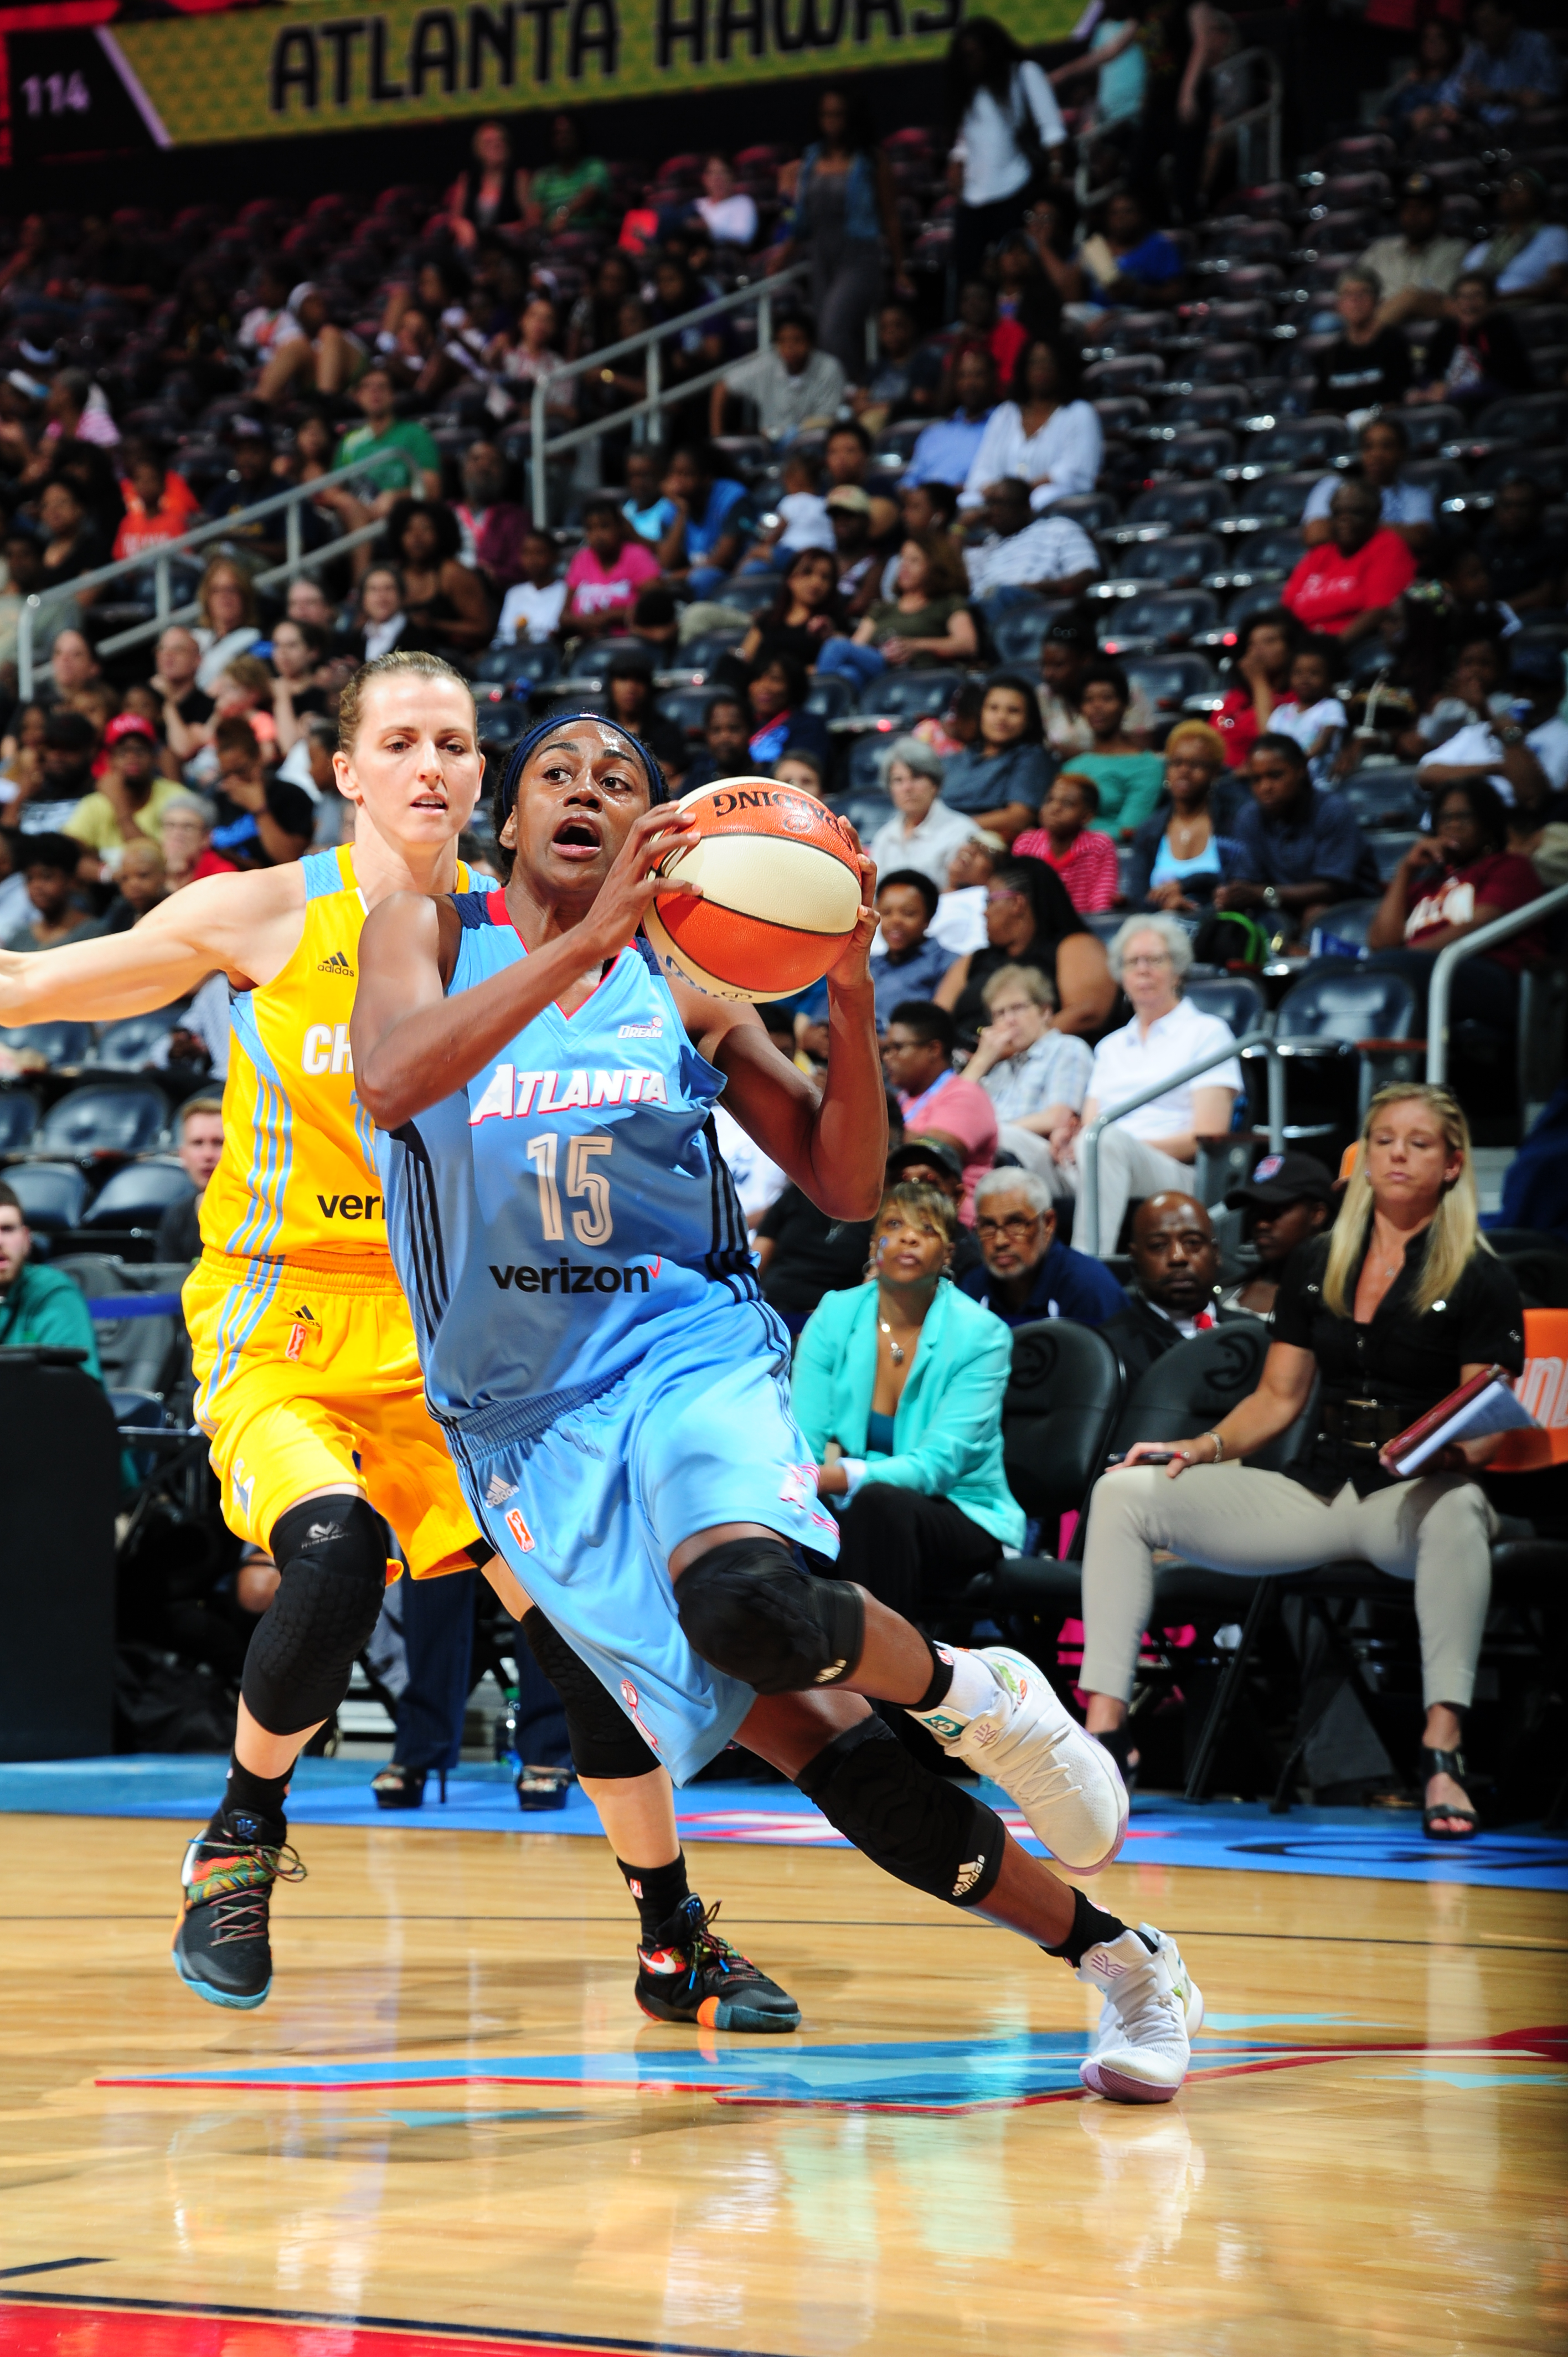 ATLANTA, GA - JUNE 17: Tiffany Hayes #15 of the Atlanta Dream drives to the basket against the Chicago Sky on June 17, 2016 at Philips Arena in Atlanta, Georgia. NOTE TO USER: User expressly acknowledges and agrees that, by downloading and/or using this Photograph, user is consenting to the terms and conditions of the Getty Images License Agreement. Mandatory Copyright Notice: Copyright 2016 NBAE (Photo by Scott Cunningham/NBAE via Getty Images)